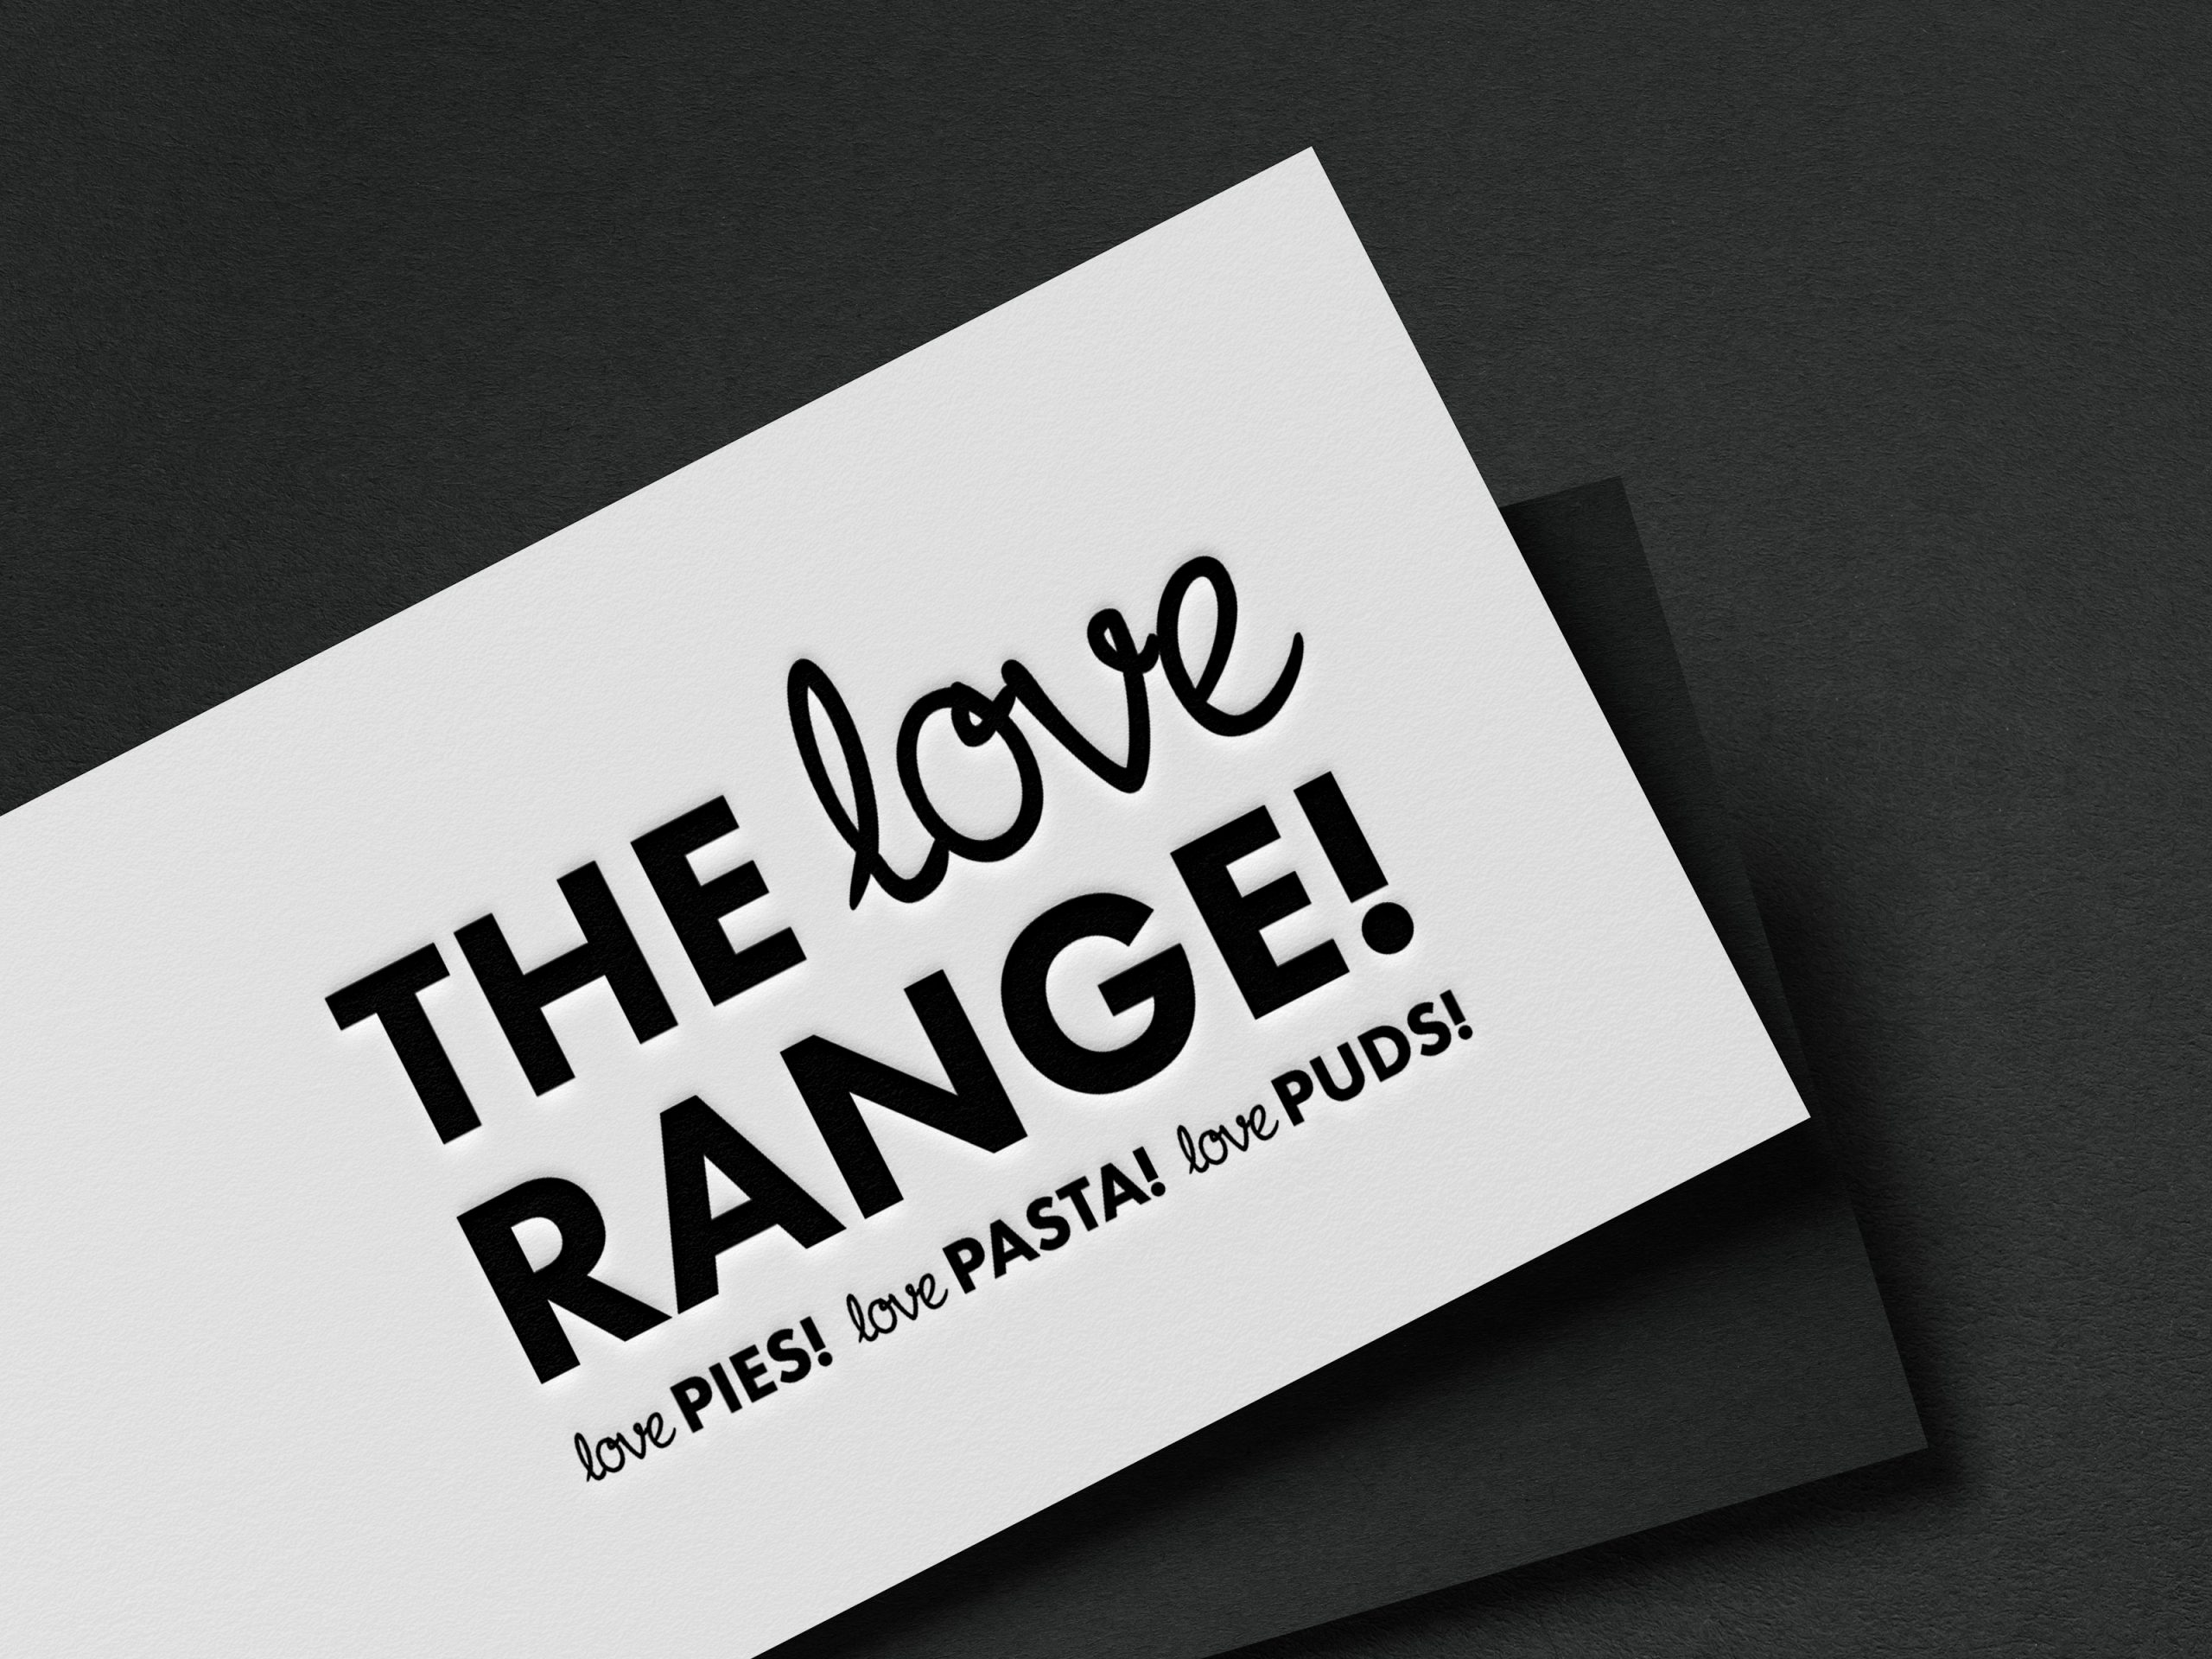 Logo and brand design for food manufacturer shown on a business card